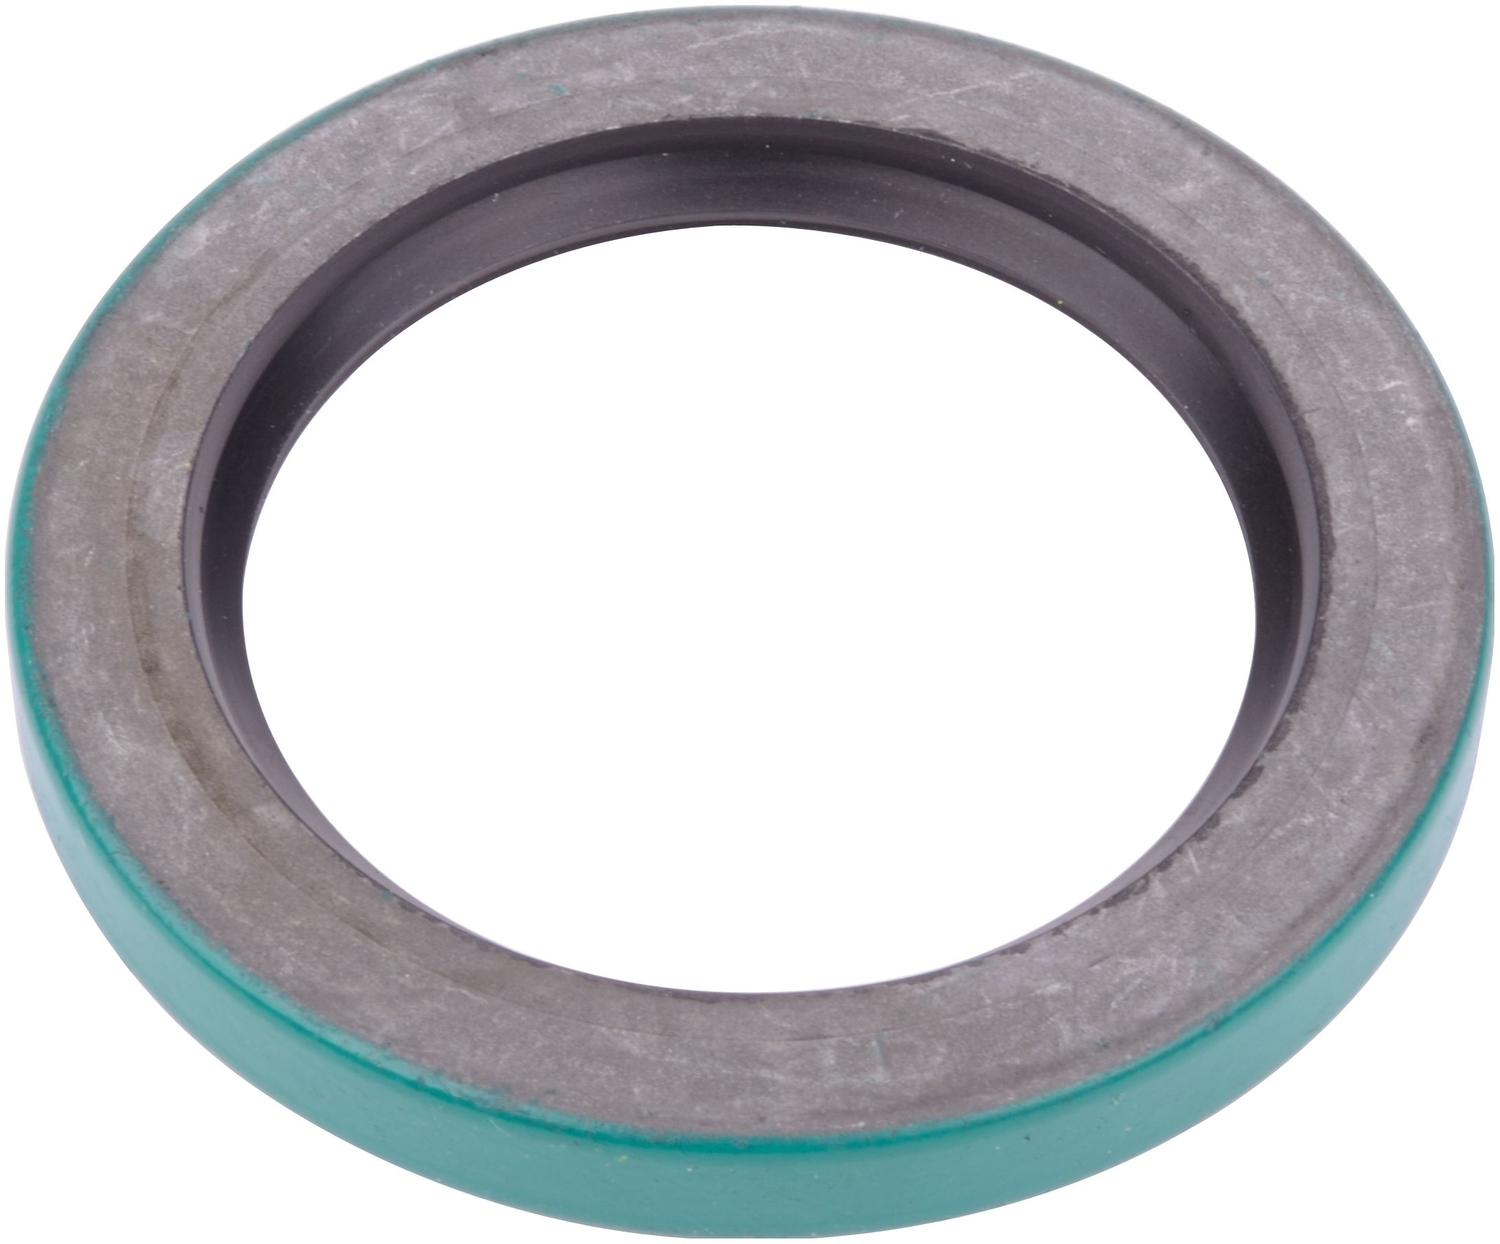 SKF (CHICAGO RAWHIDE) - Transfer Case Input Shaft Seal - SKF 19244